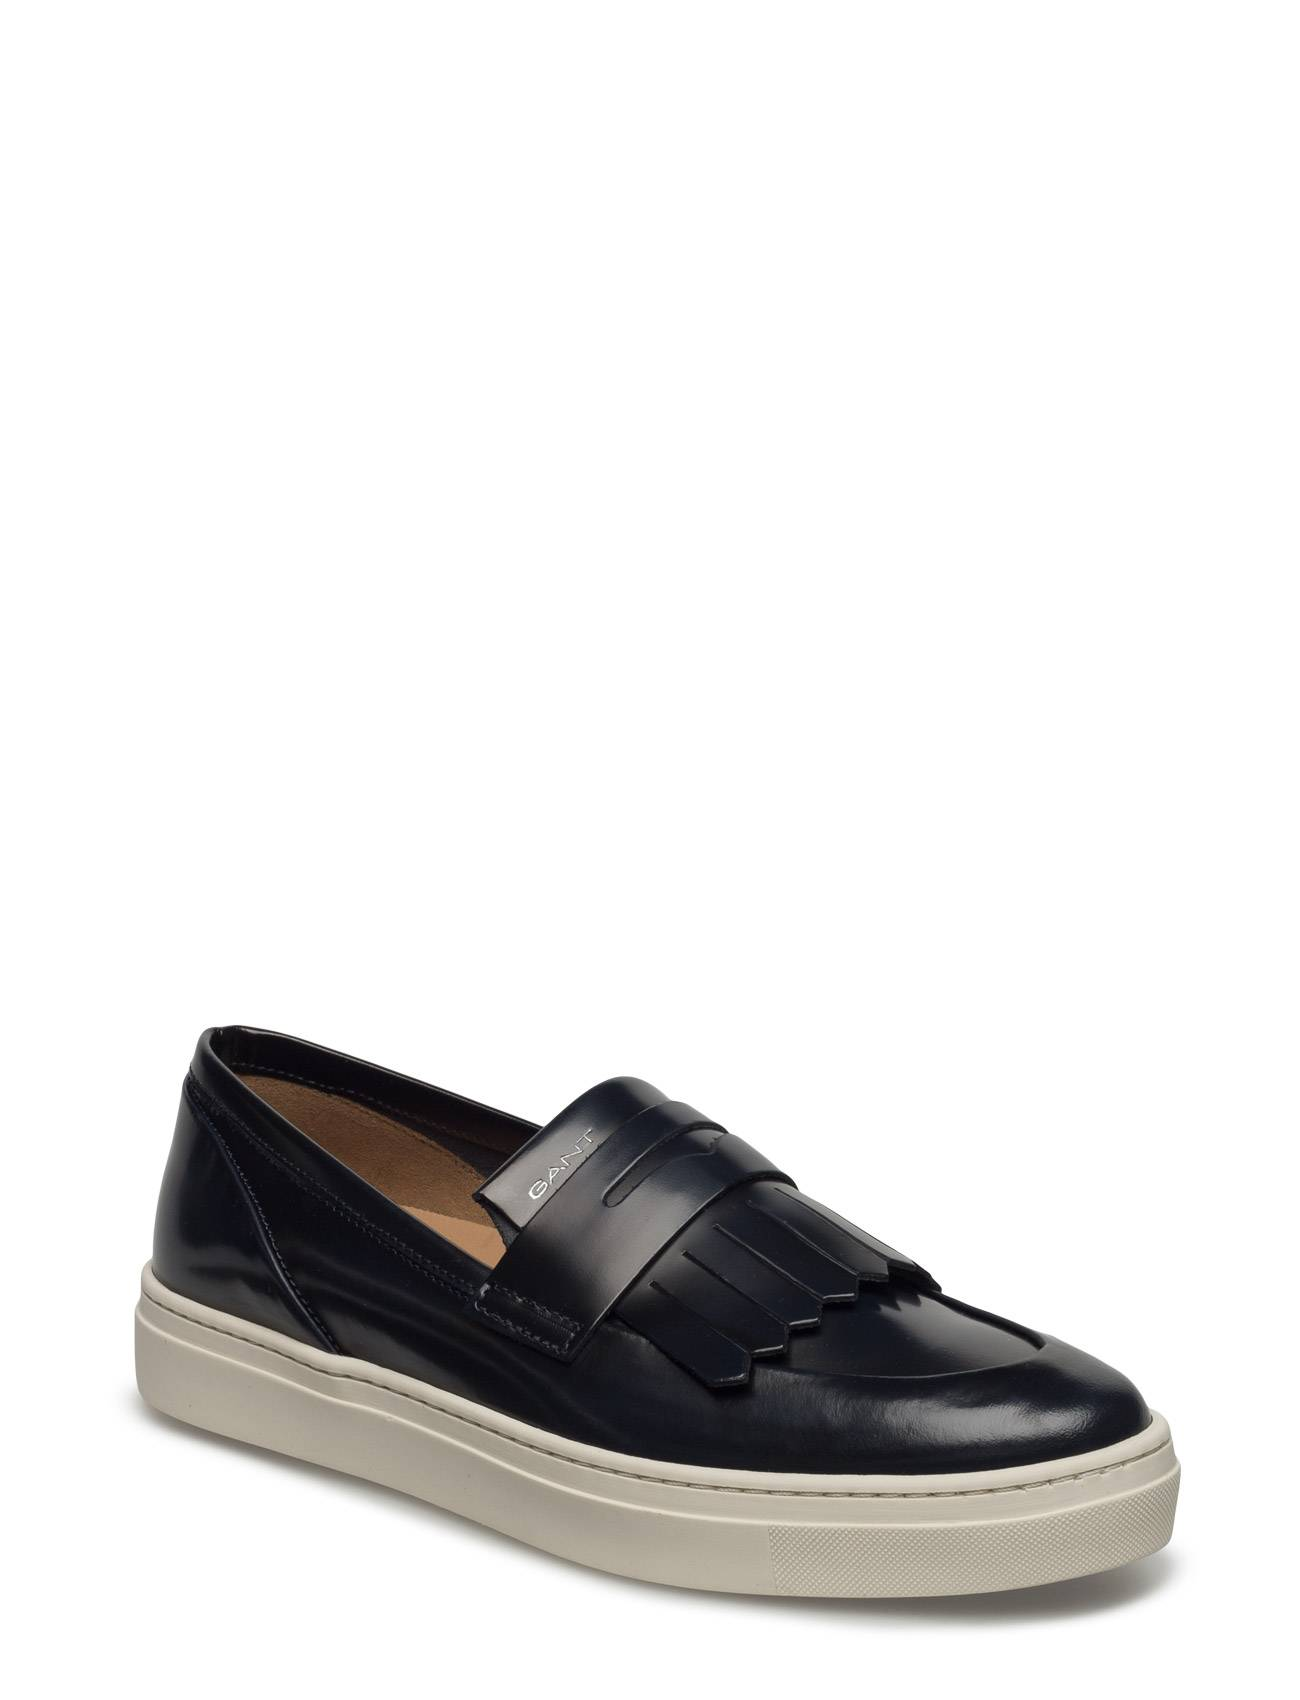 GANT Michelle Slip-On Shoes